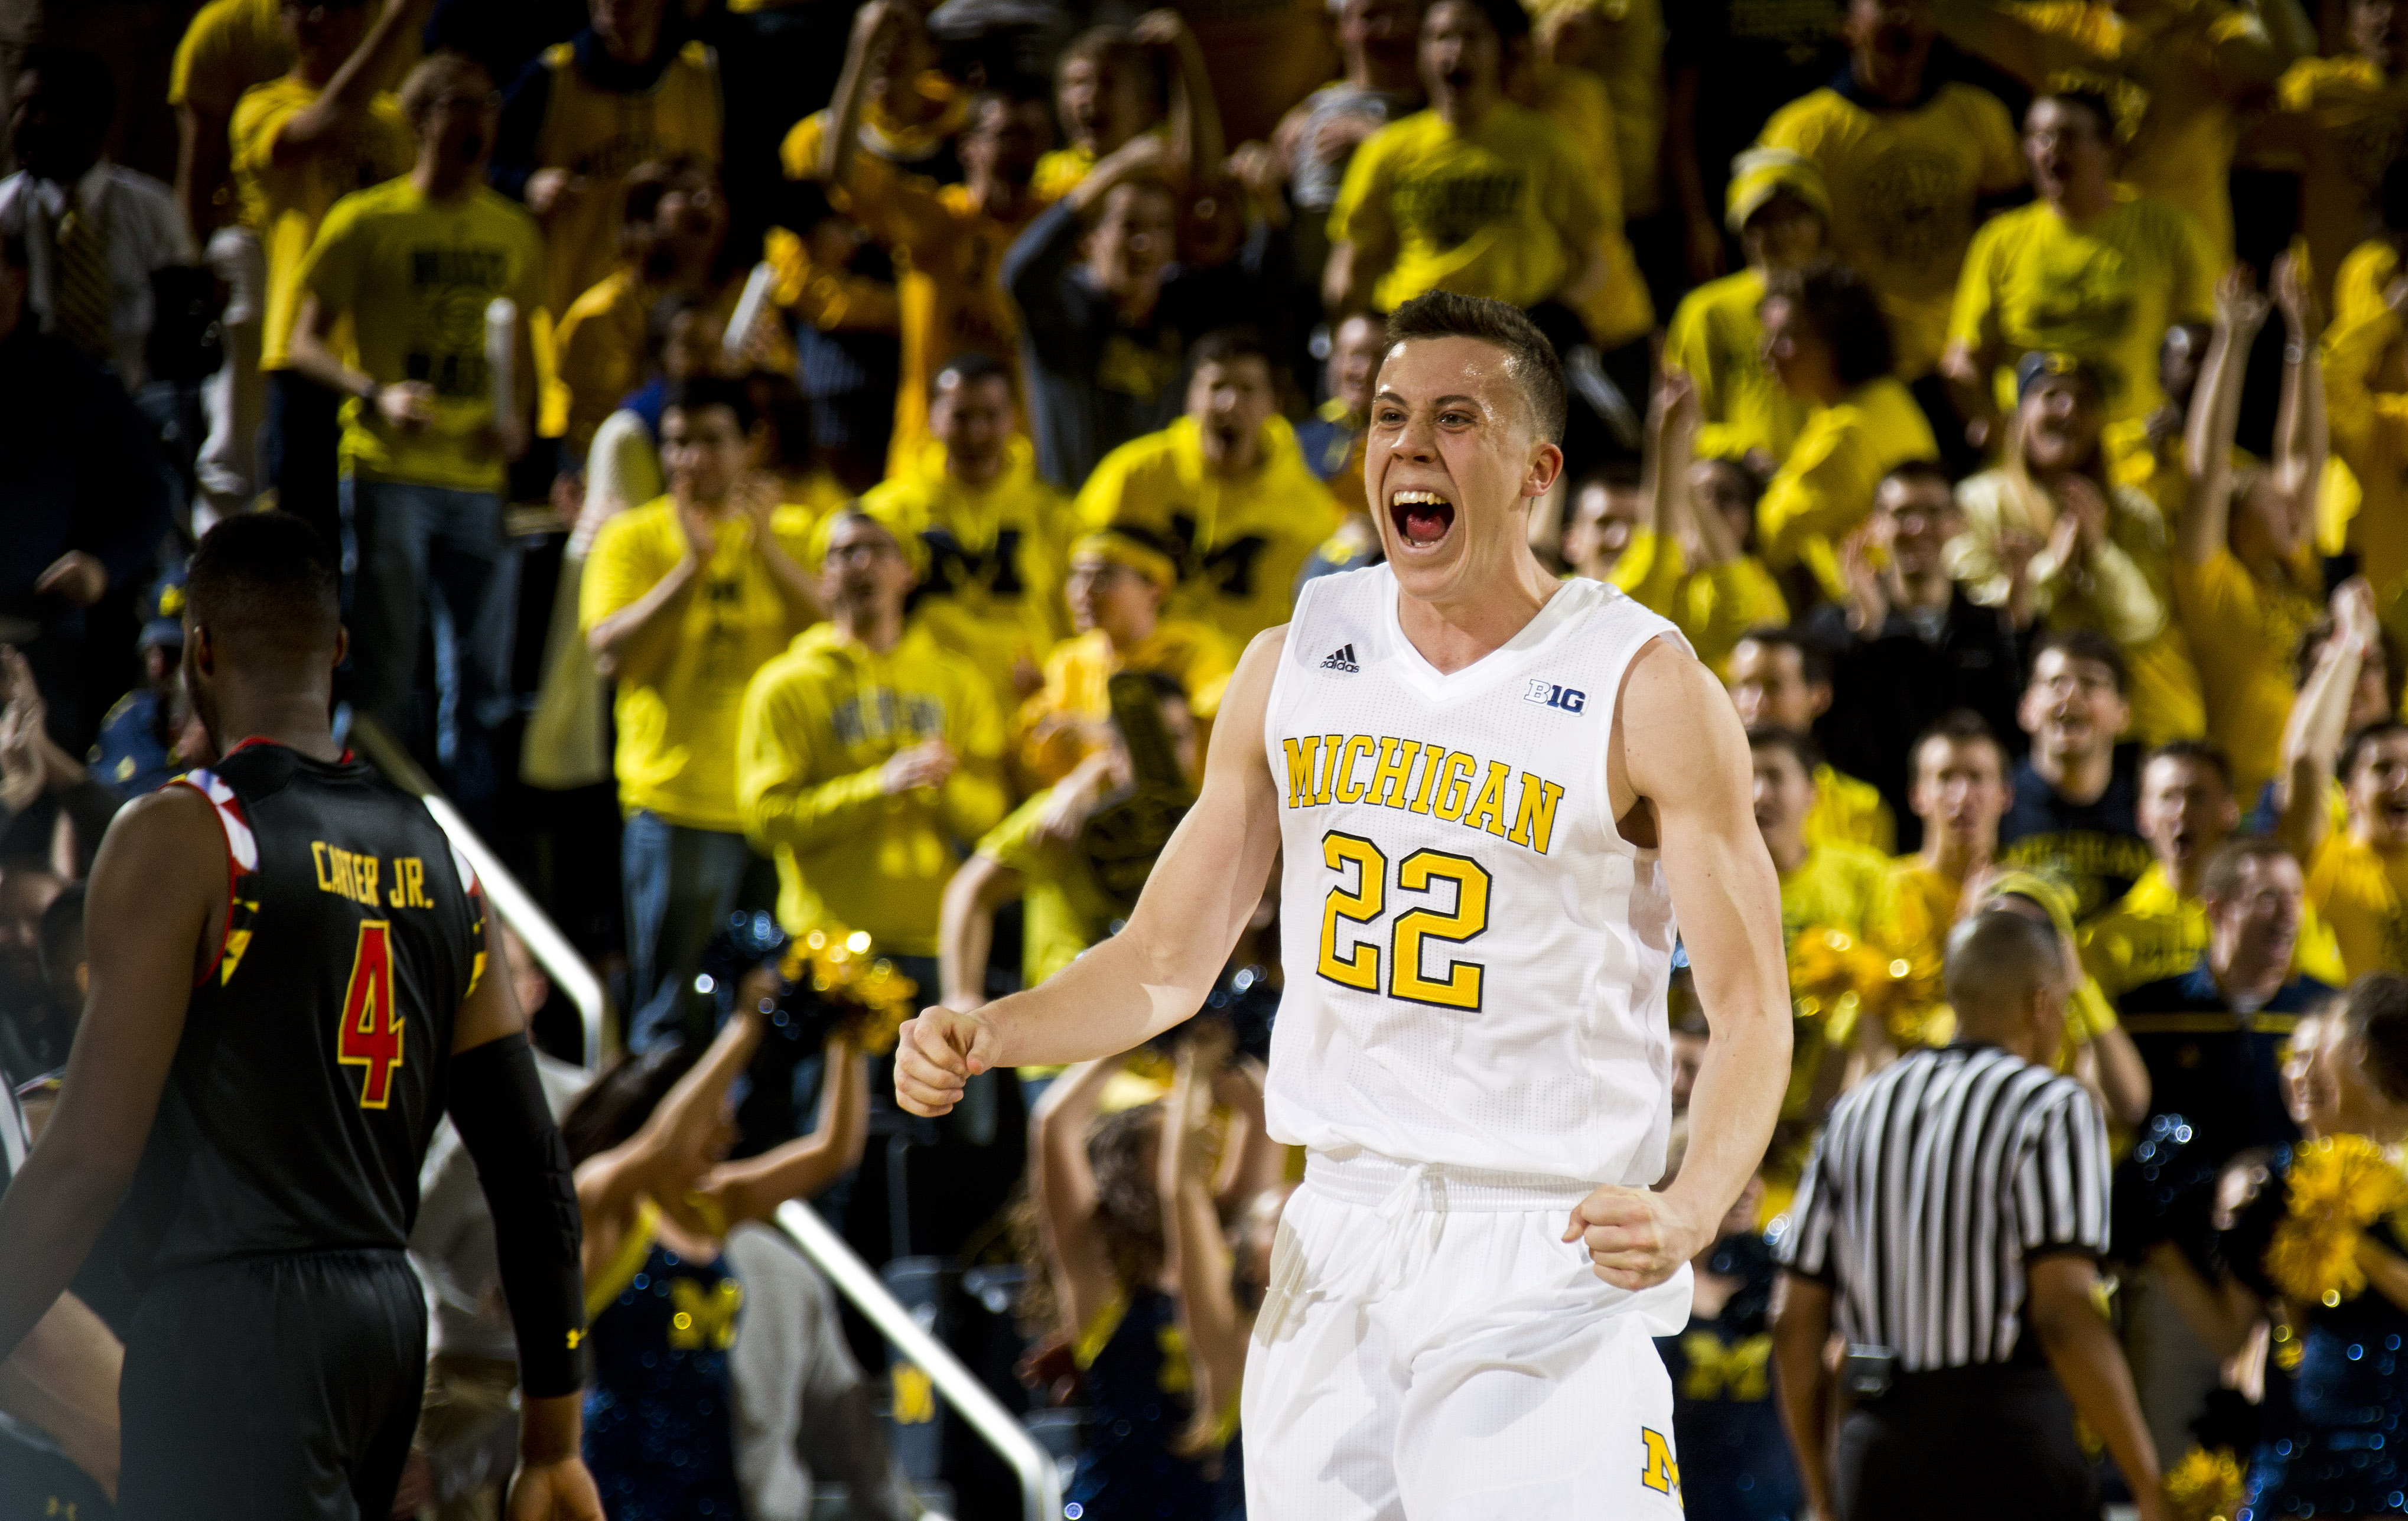 Michigan guard Duncan Robinson (22) celebrates after the final seconds of an NCAA college basketball game against Maryland at Crisler Center in Ann Arbor, Mich., Tuesday, Jan. 12, 2016. Michigan won 70-67. (AP Photo/Tony Ding)